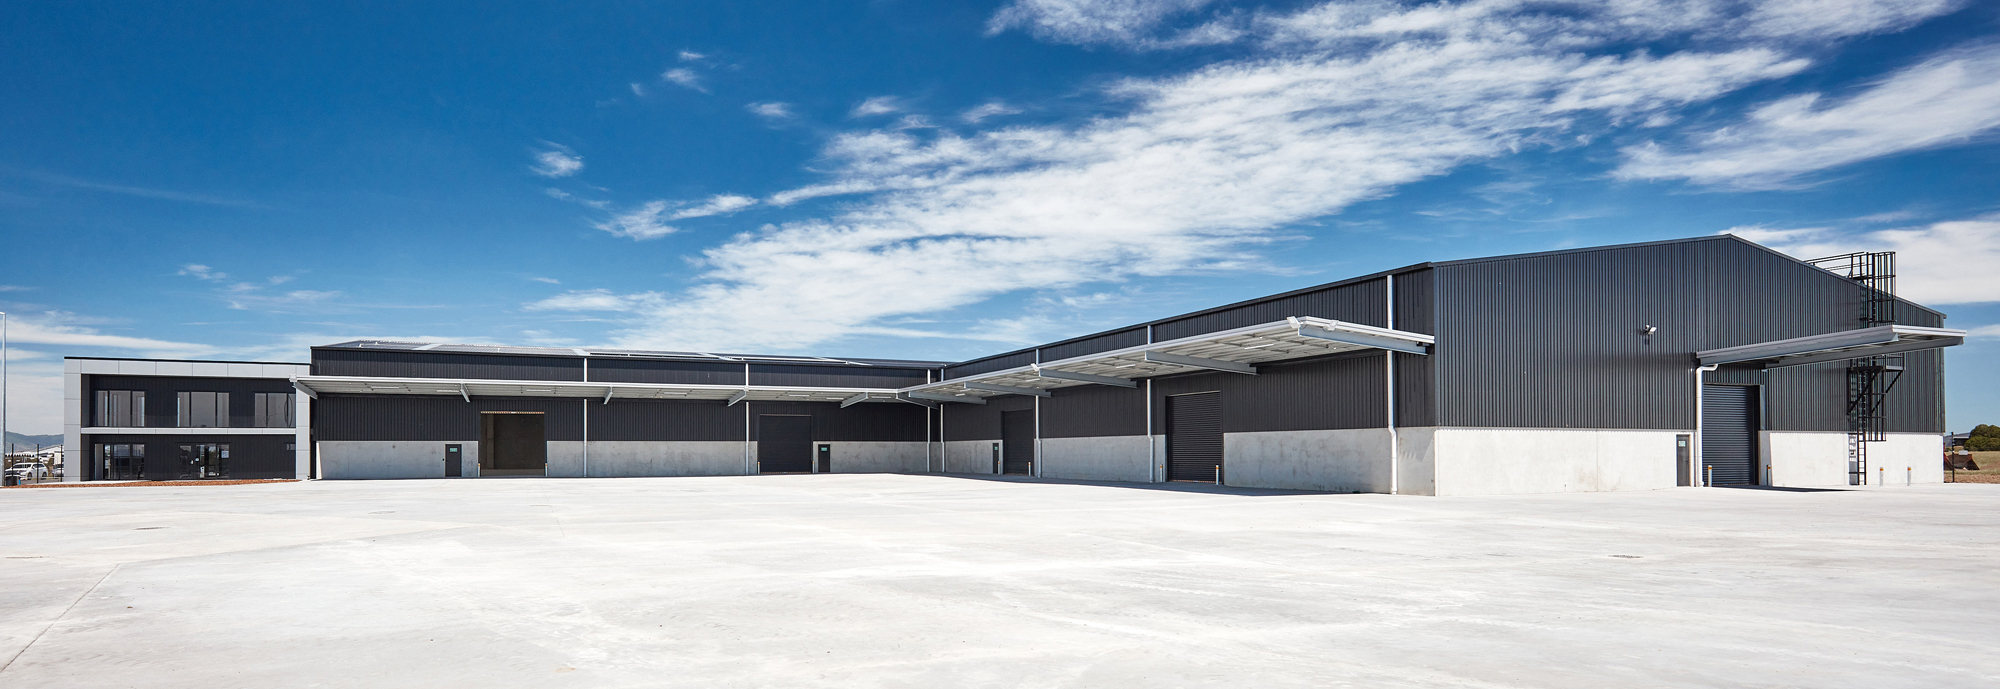 Outside of South Star - Ngai Tahu a building project with steel and concrete in Christchurch by Cohesive Group.